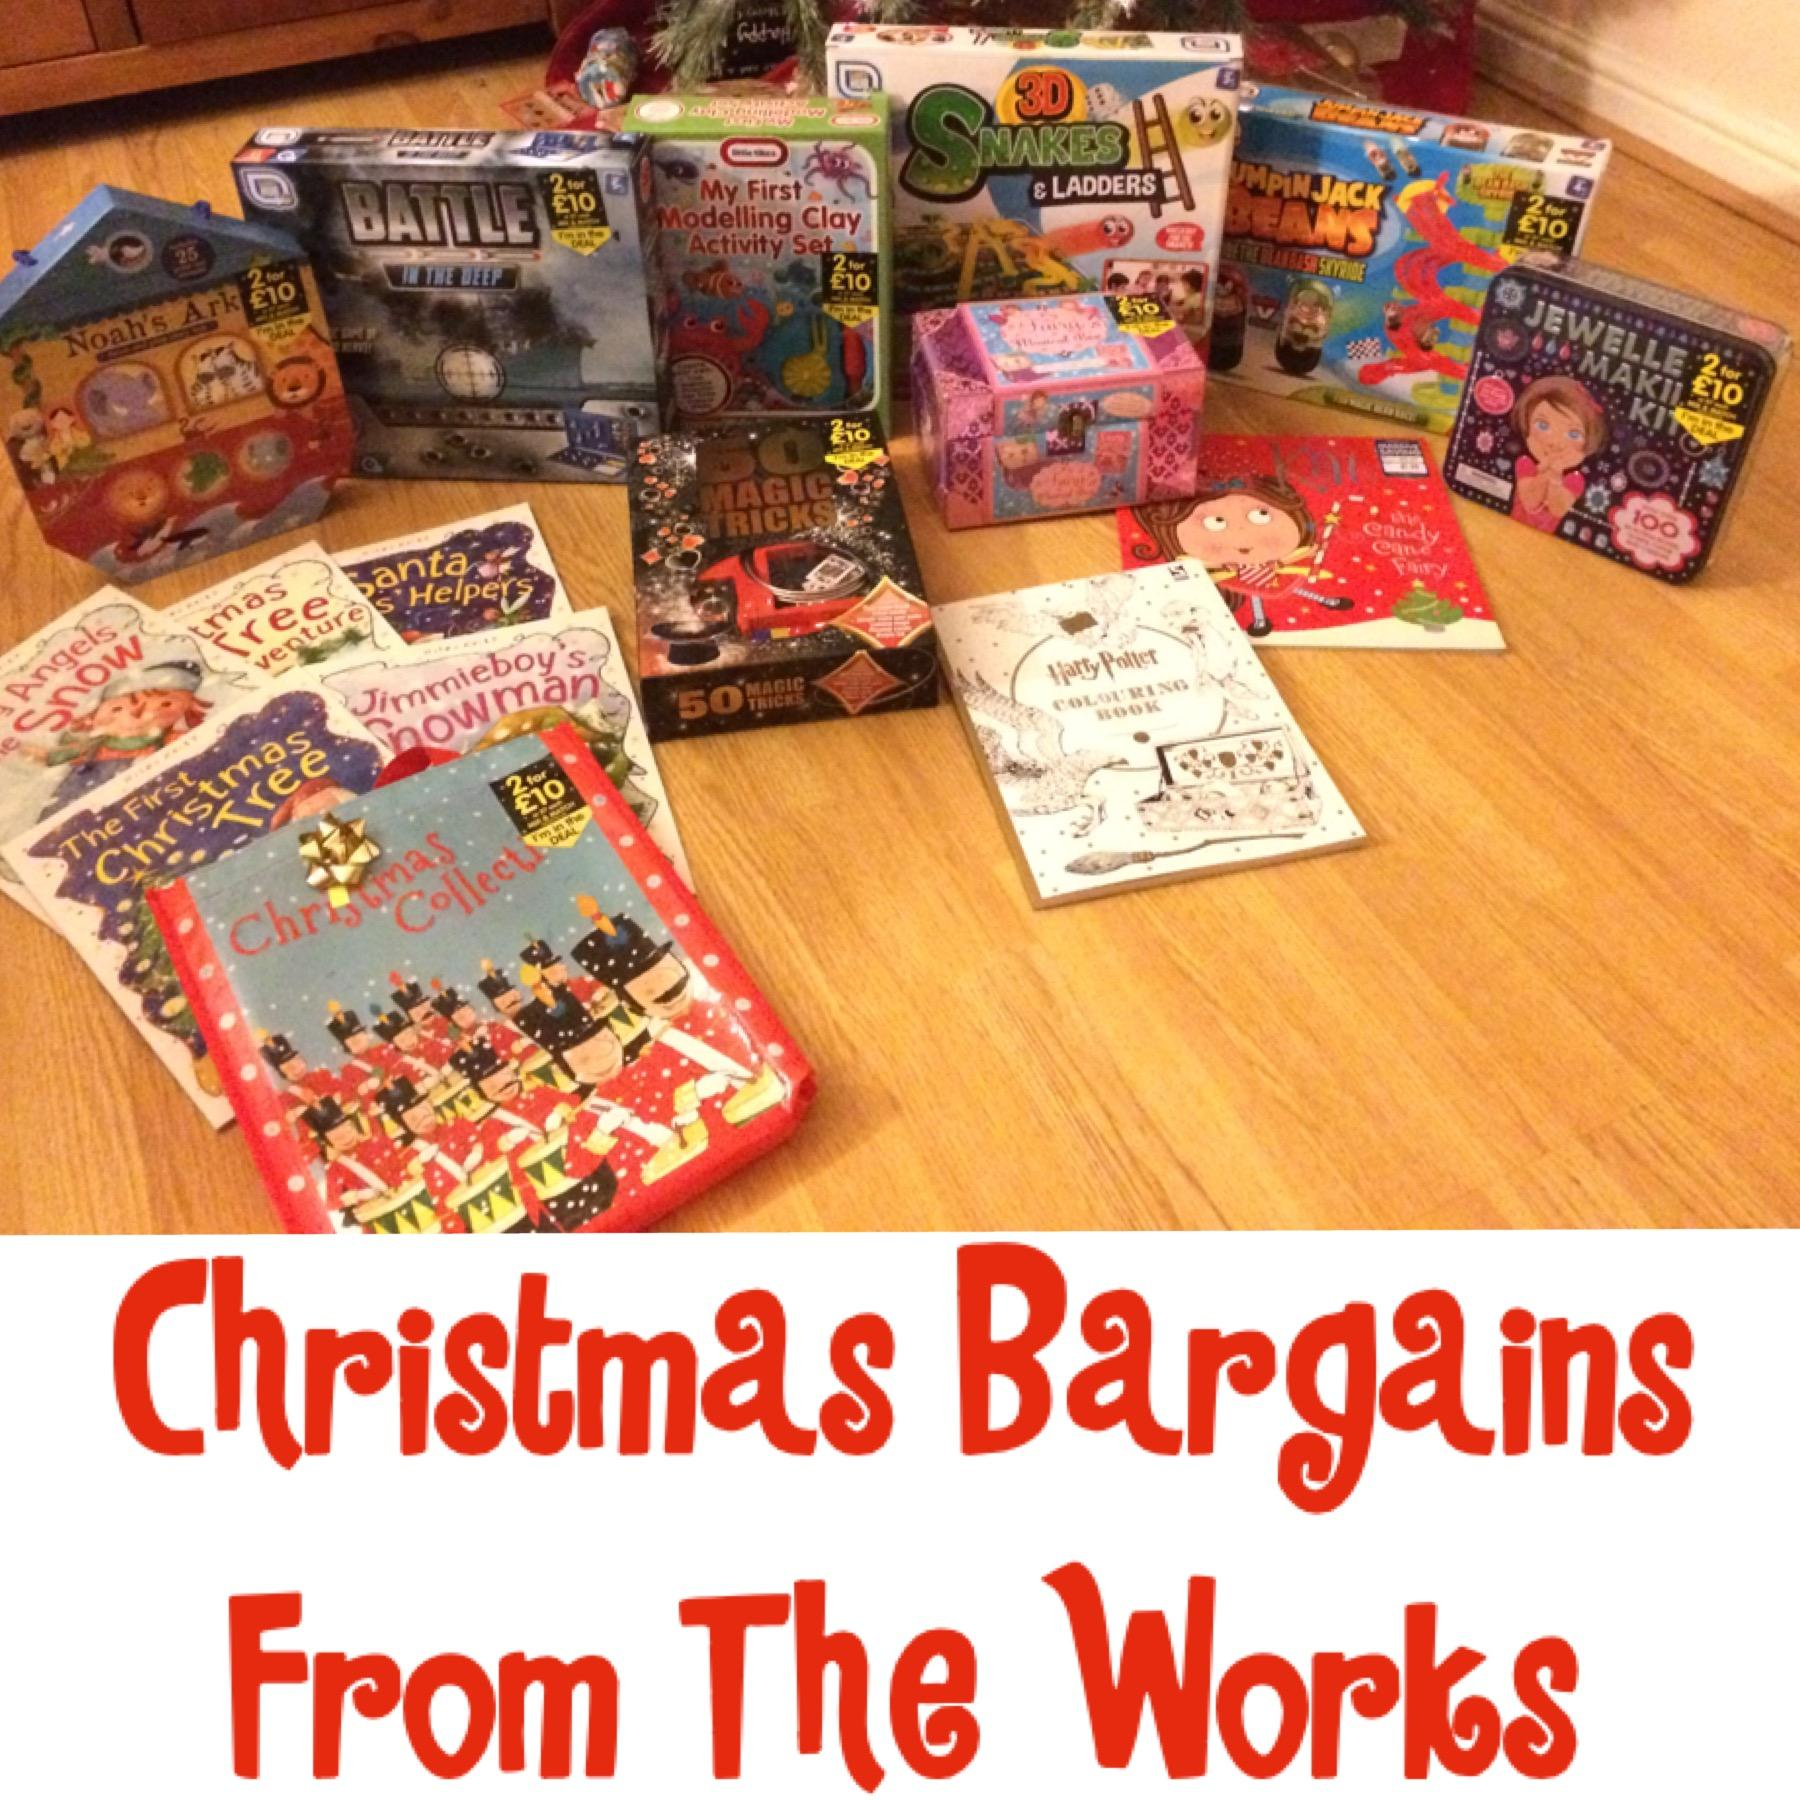 Christmas bargains